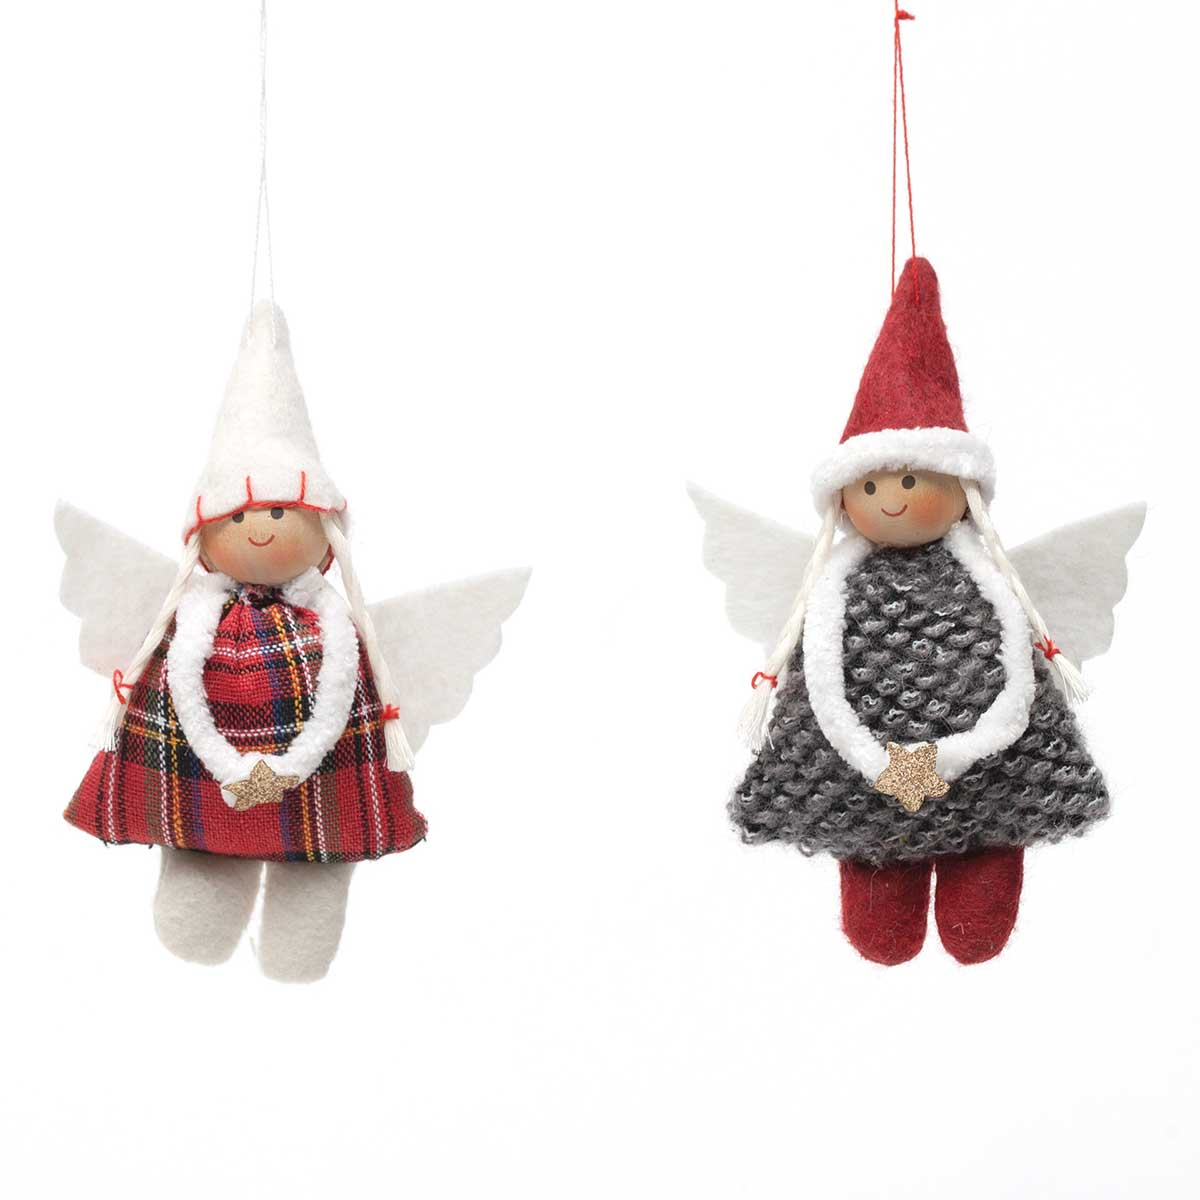 RED/GREY ANGEL GIRL ORNAMENT WITH STAR